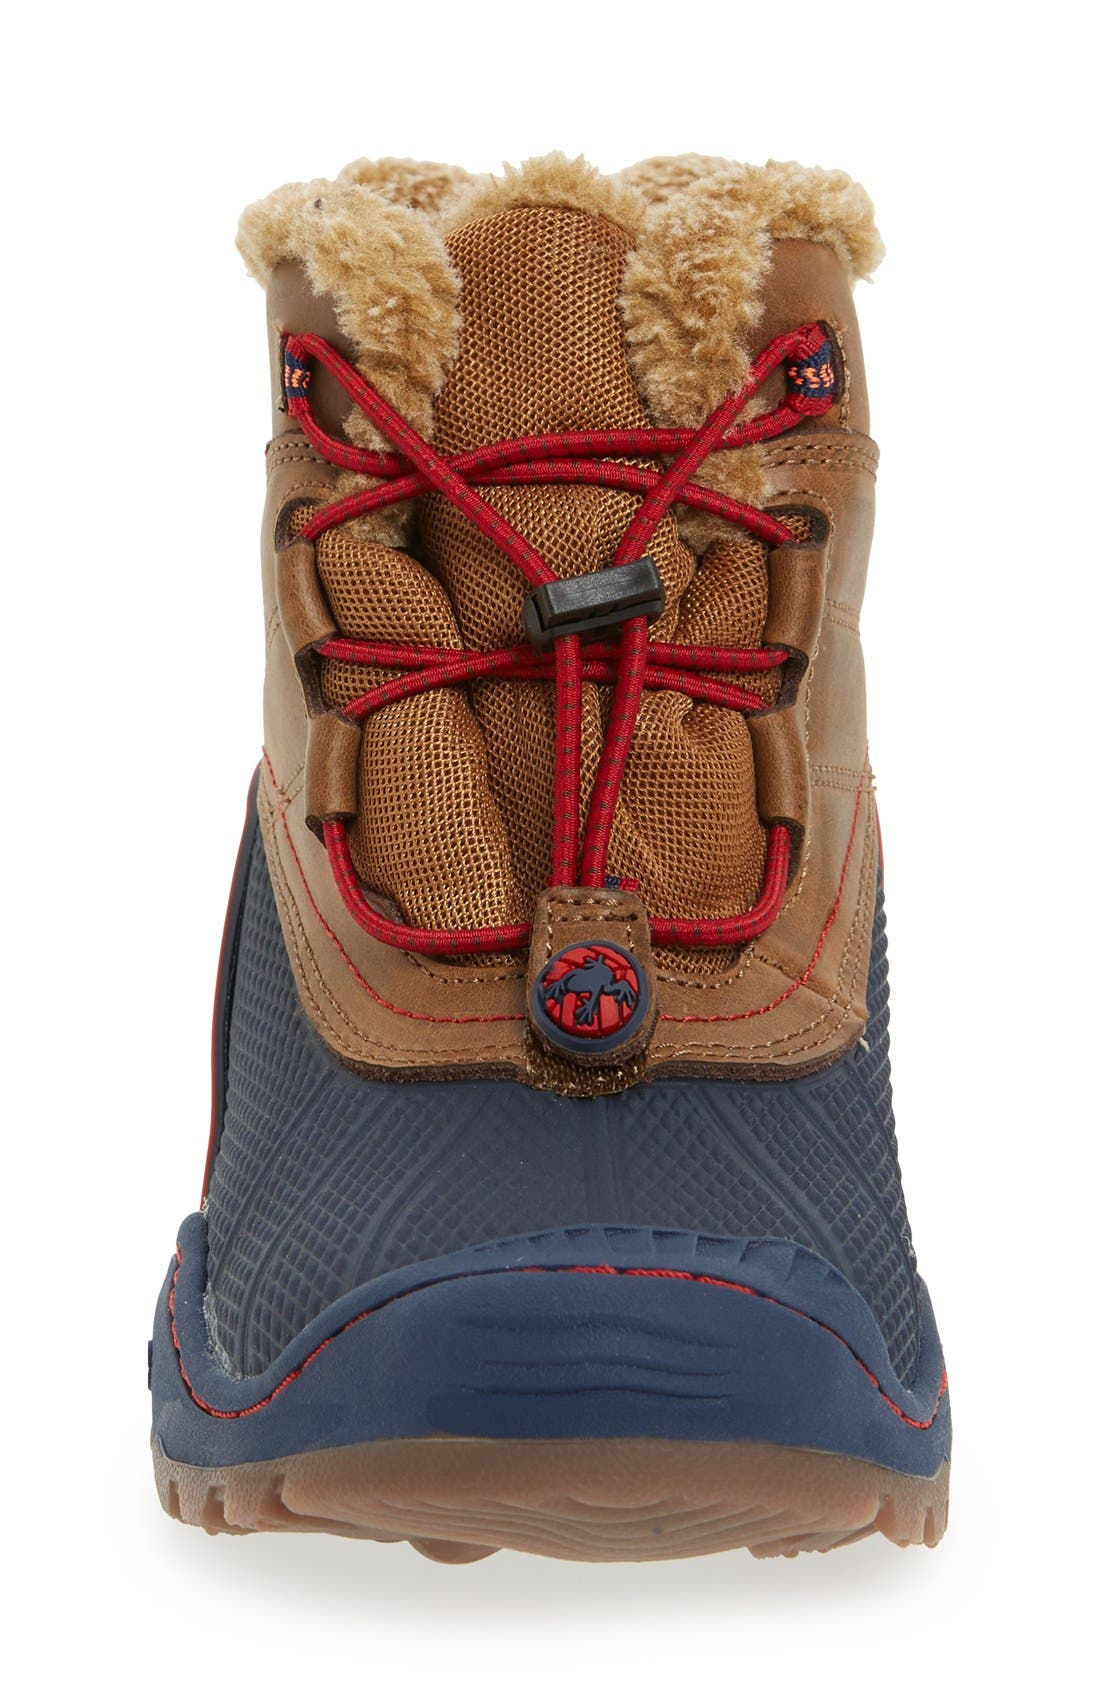 'Baltoro 3' Waterproof Insulated Snow Boot,                             Alternate thumbnail 3, color,                             247